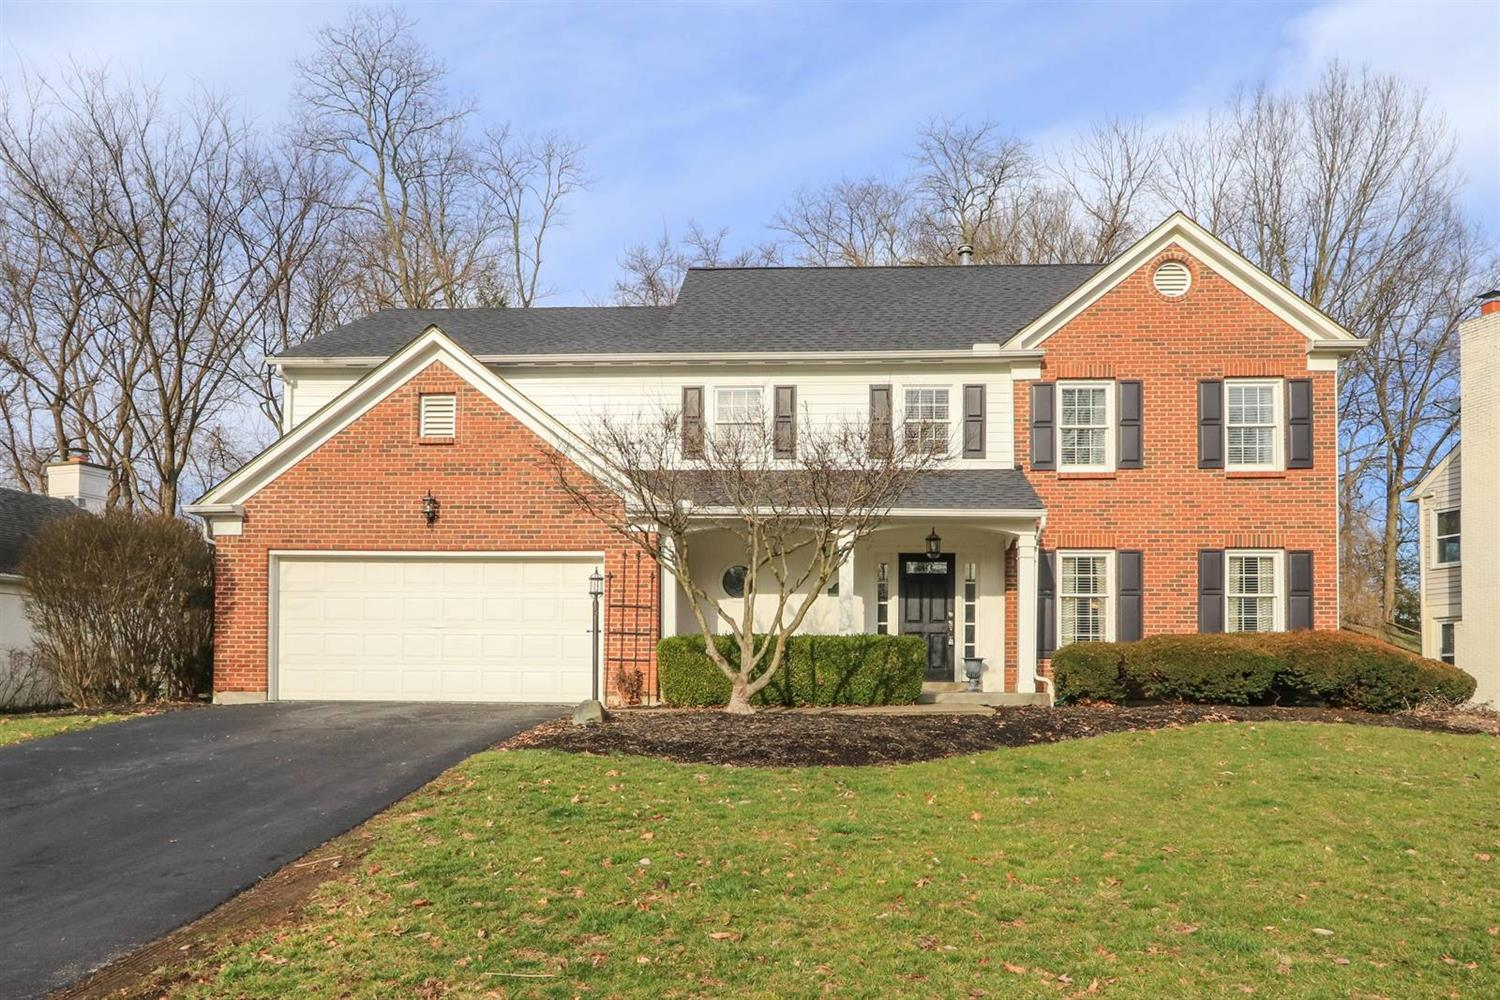 Property for sale at 7877 Ashley View Drive, Columbia Twp,  Ohio 45227